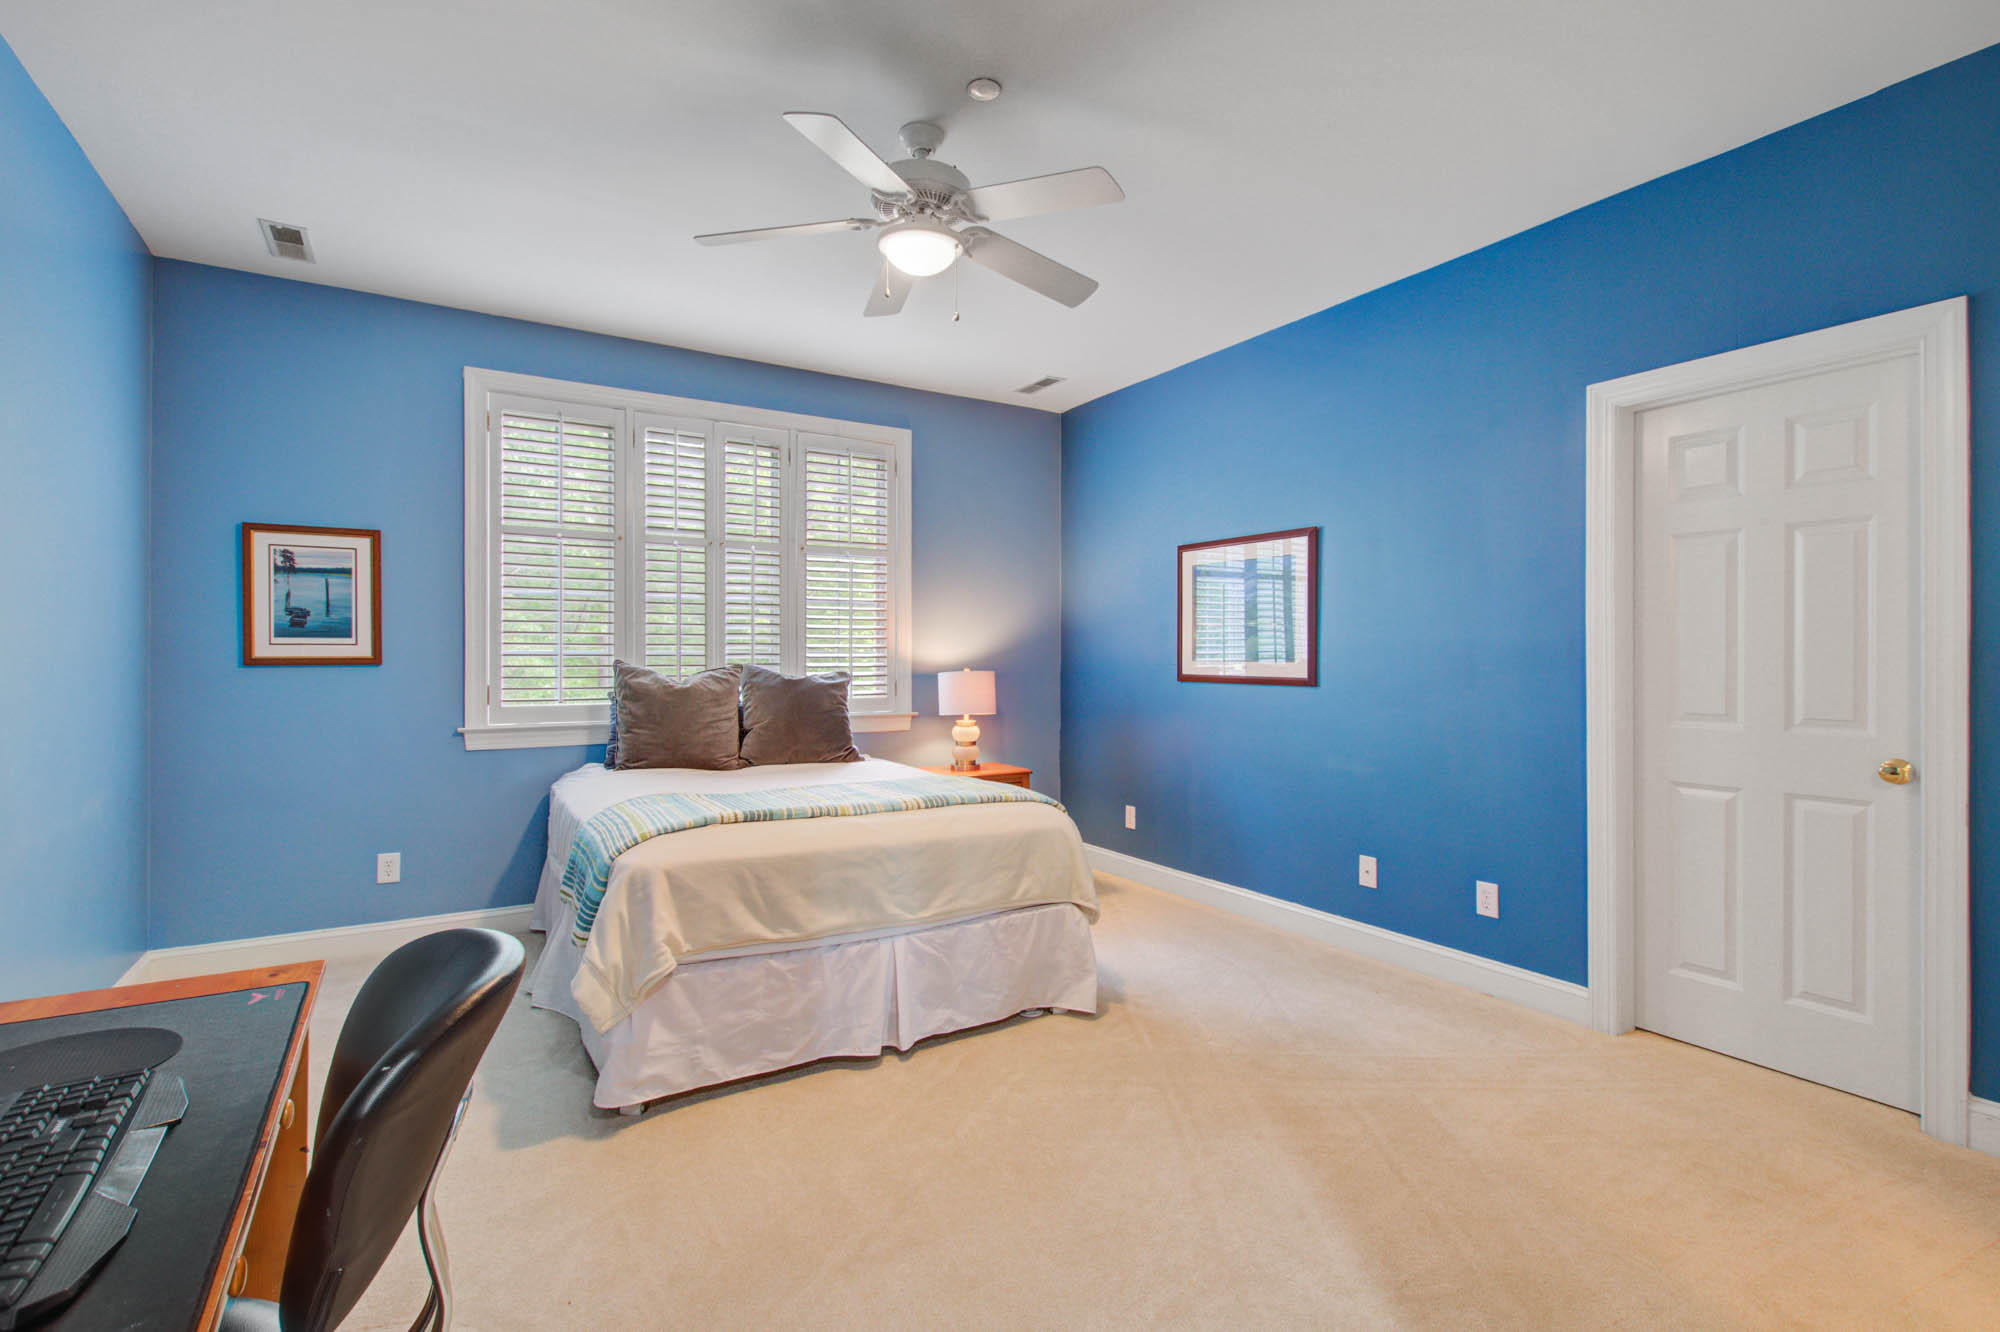 Dunes West Homes For Sale - 2069 Shell Ring, Mount Pleasant, SC - 6